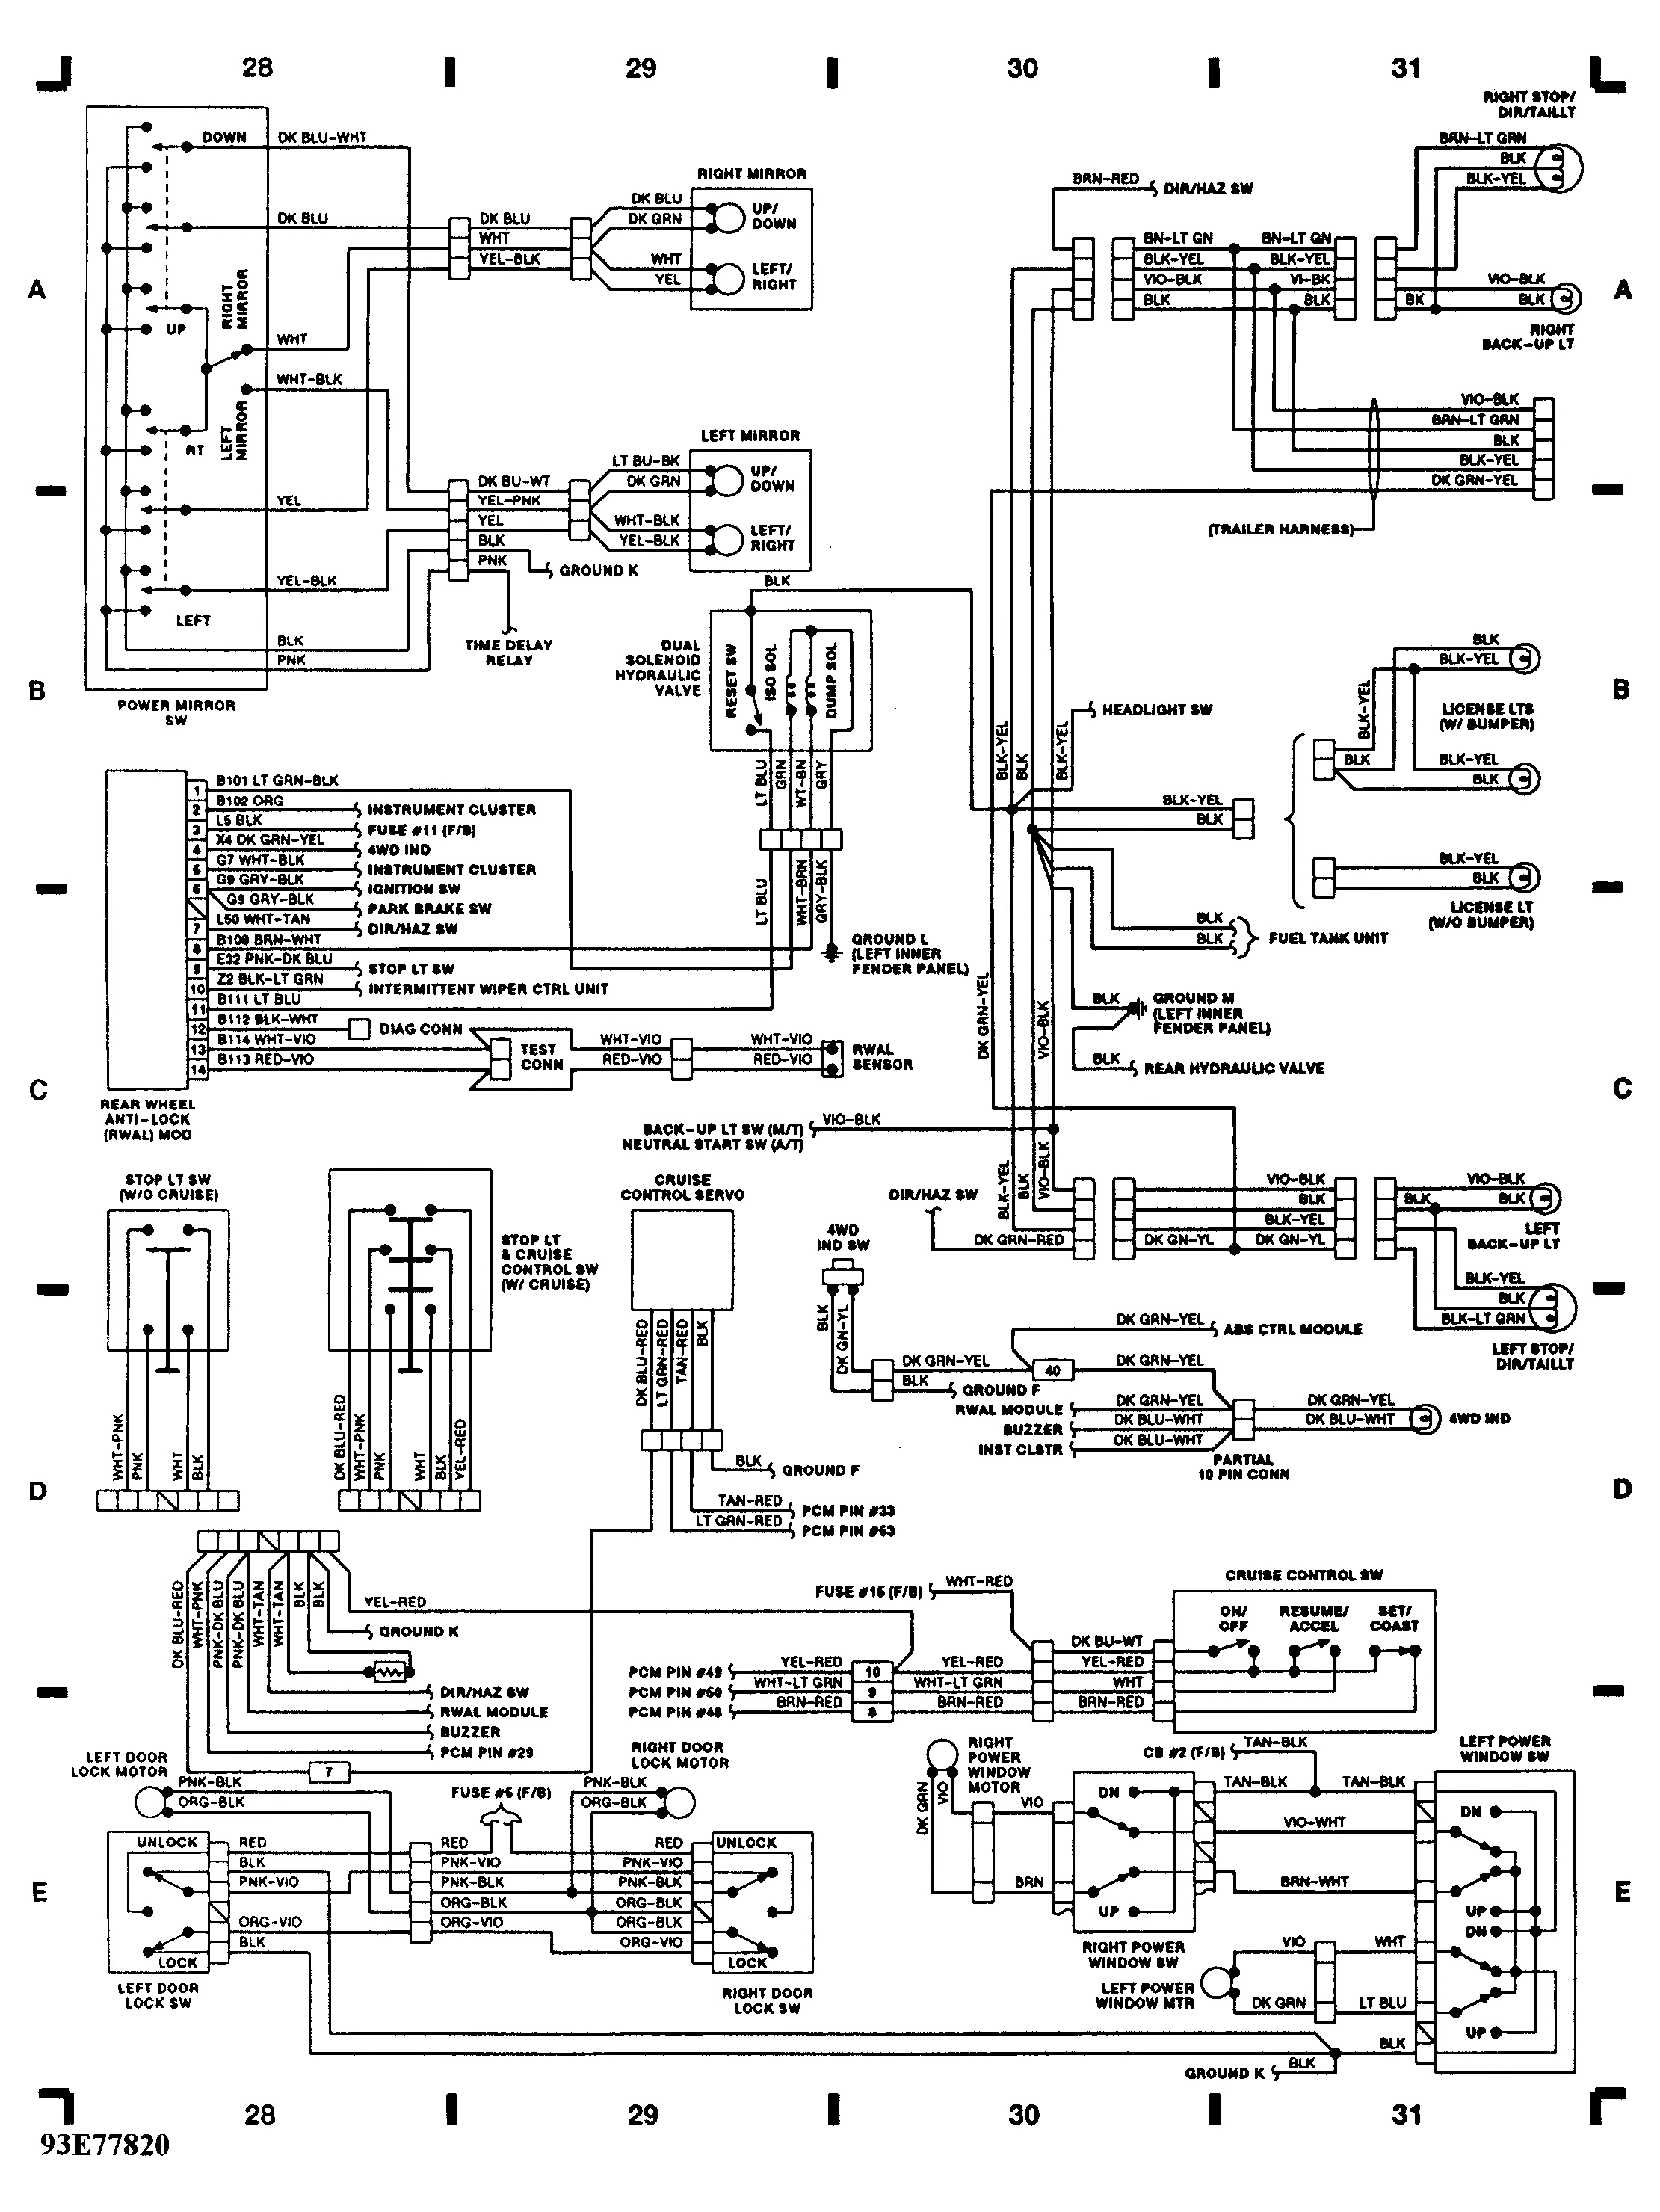 1995 Dodge Dakota Headlight Switch Wiring Diagram